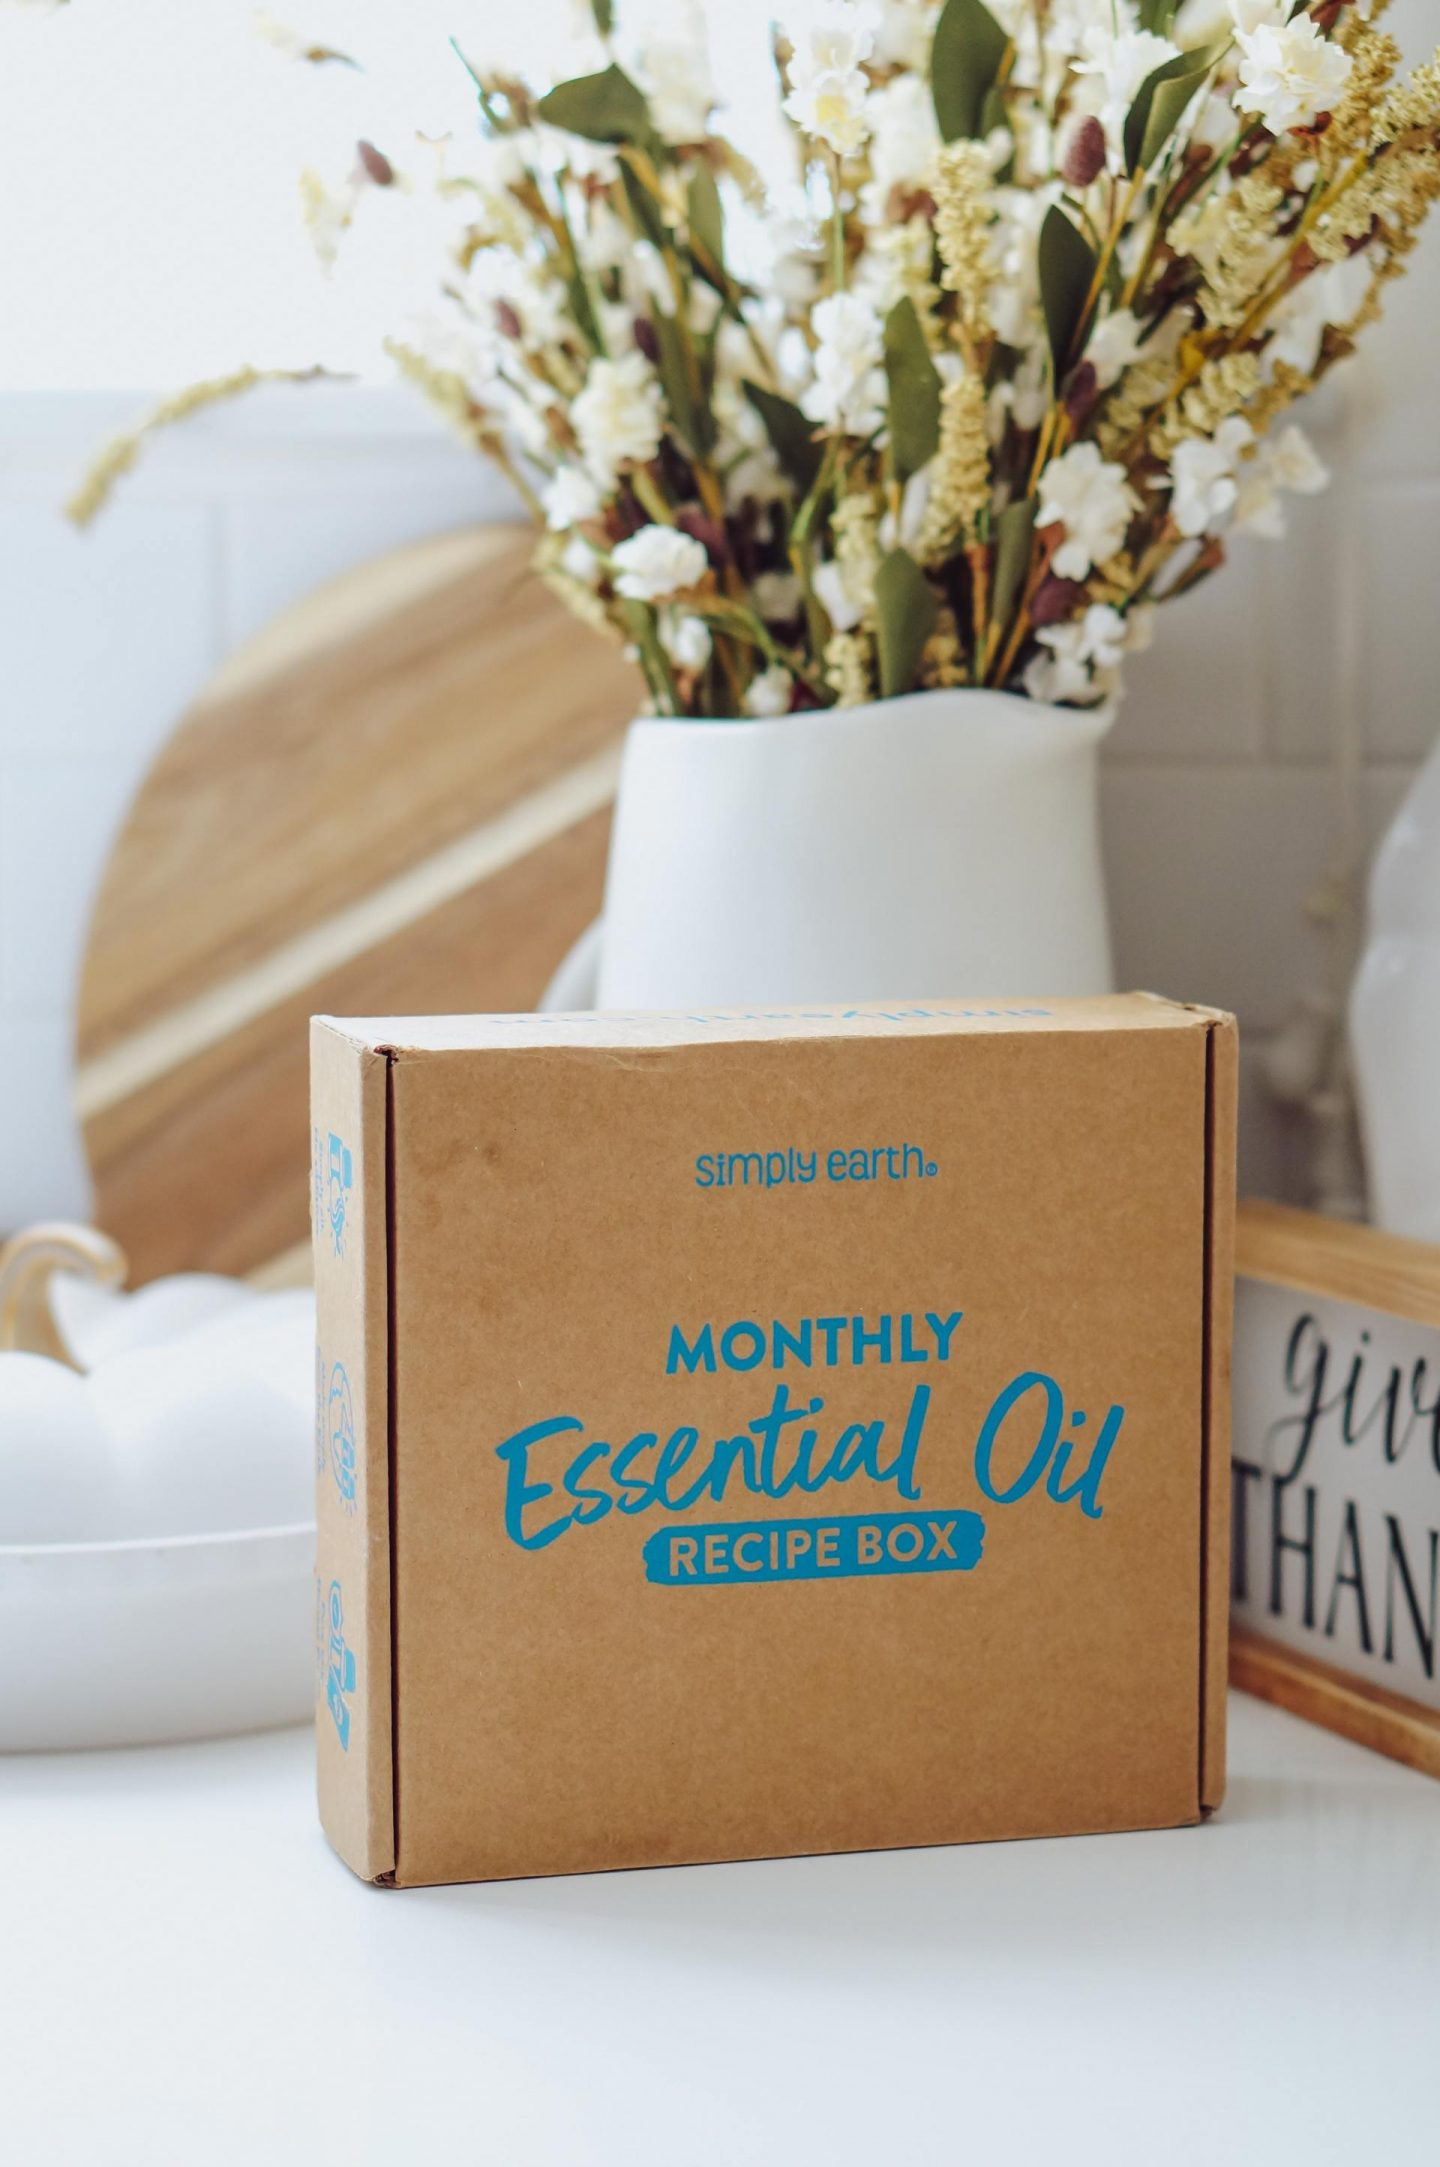 NC blogger Rebecca Lately is sharing her Simply Earth October 2021 subscription box. Check this month's theme here!